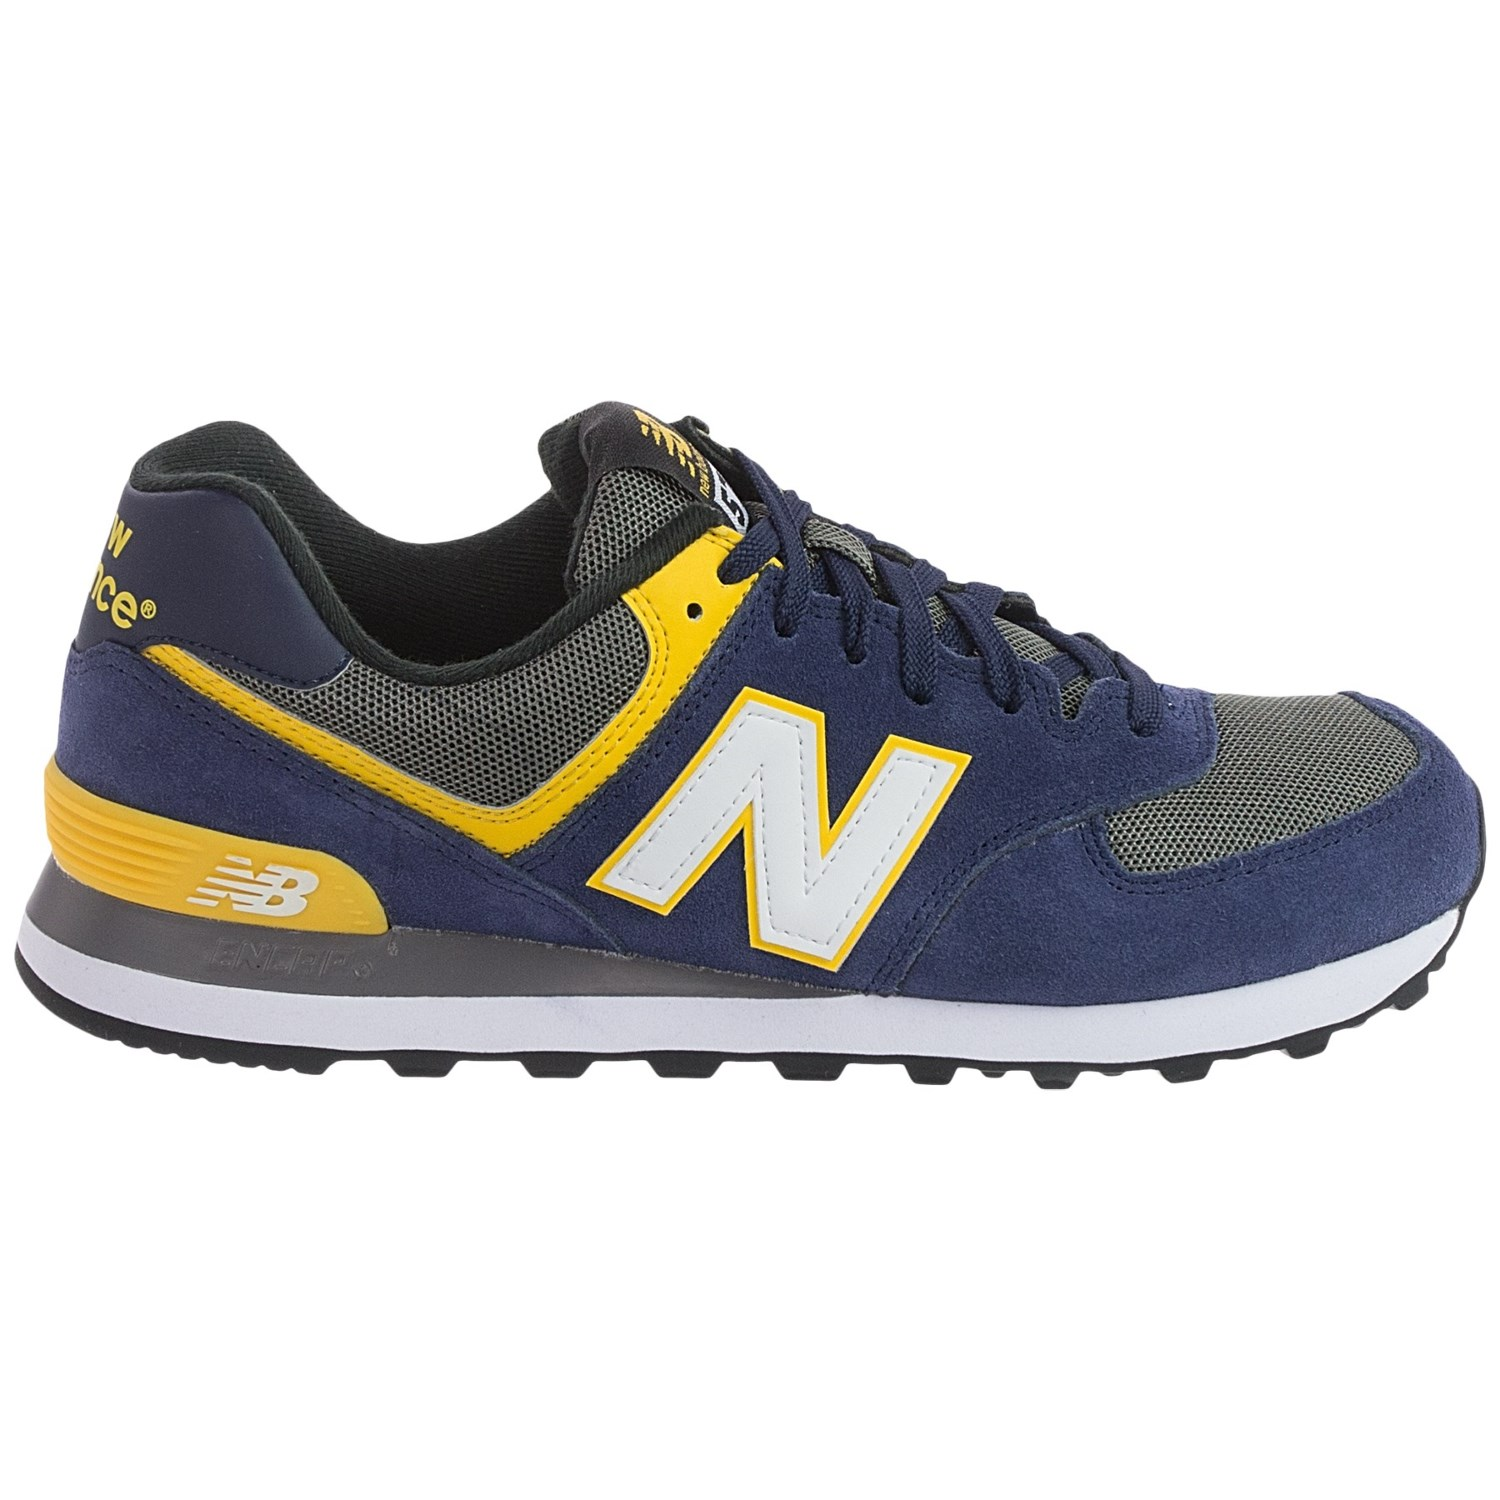 new balance men's classic sneakers